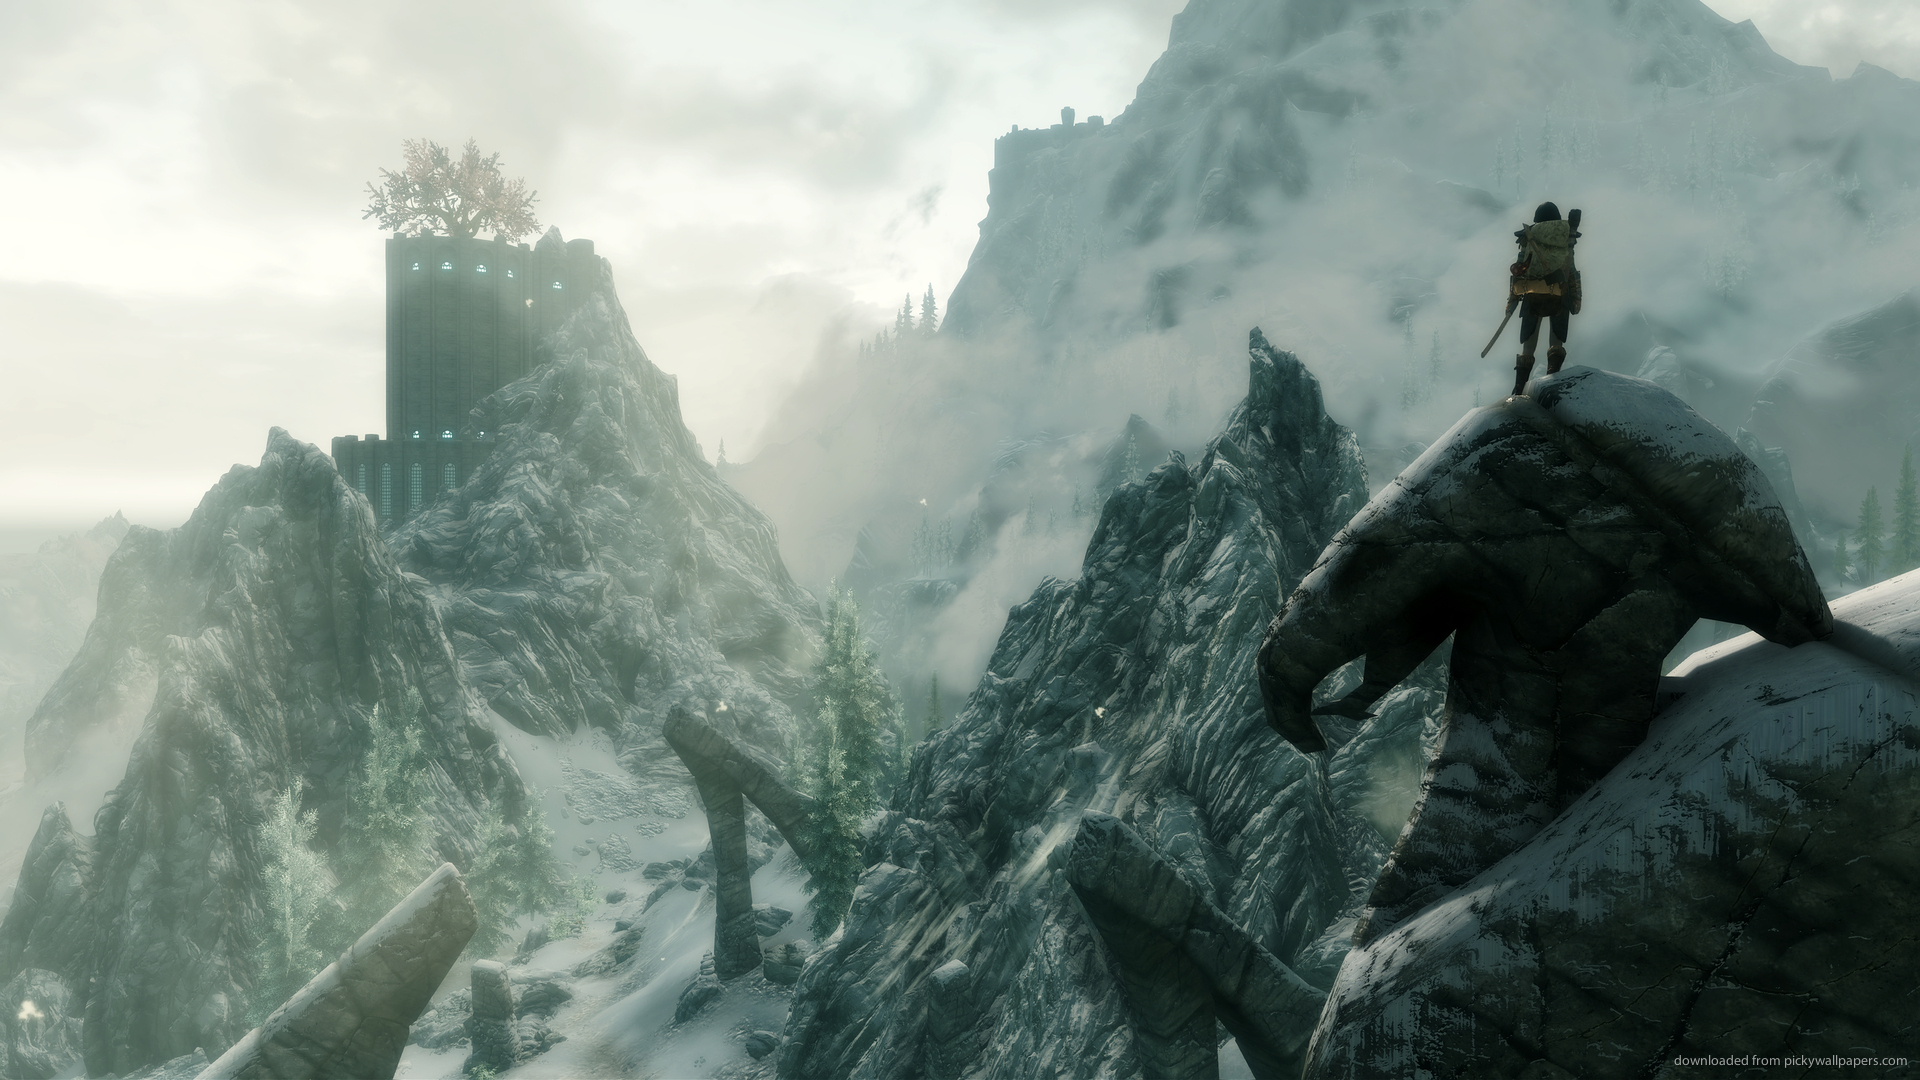 The Solitude of 'Skyrim' Remains The Remedy For An Overly-Connected Age